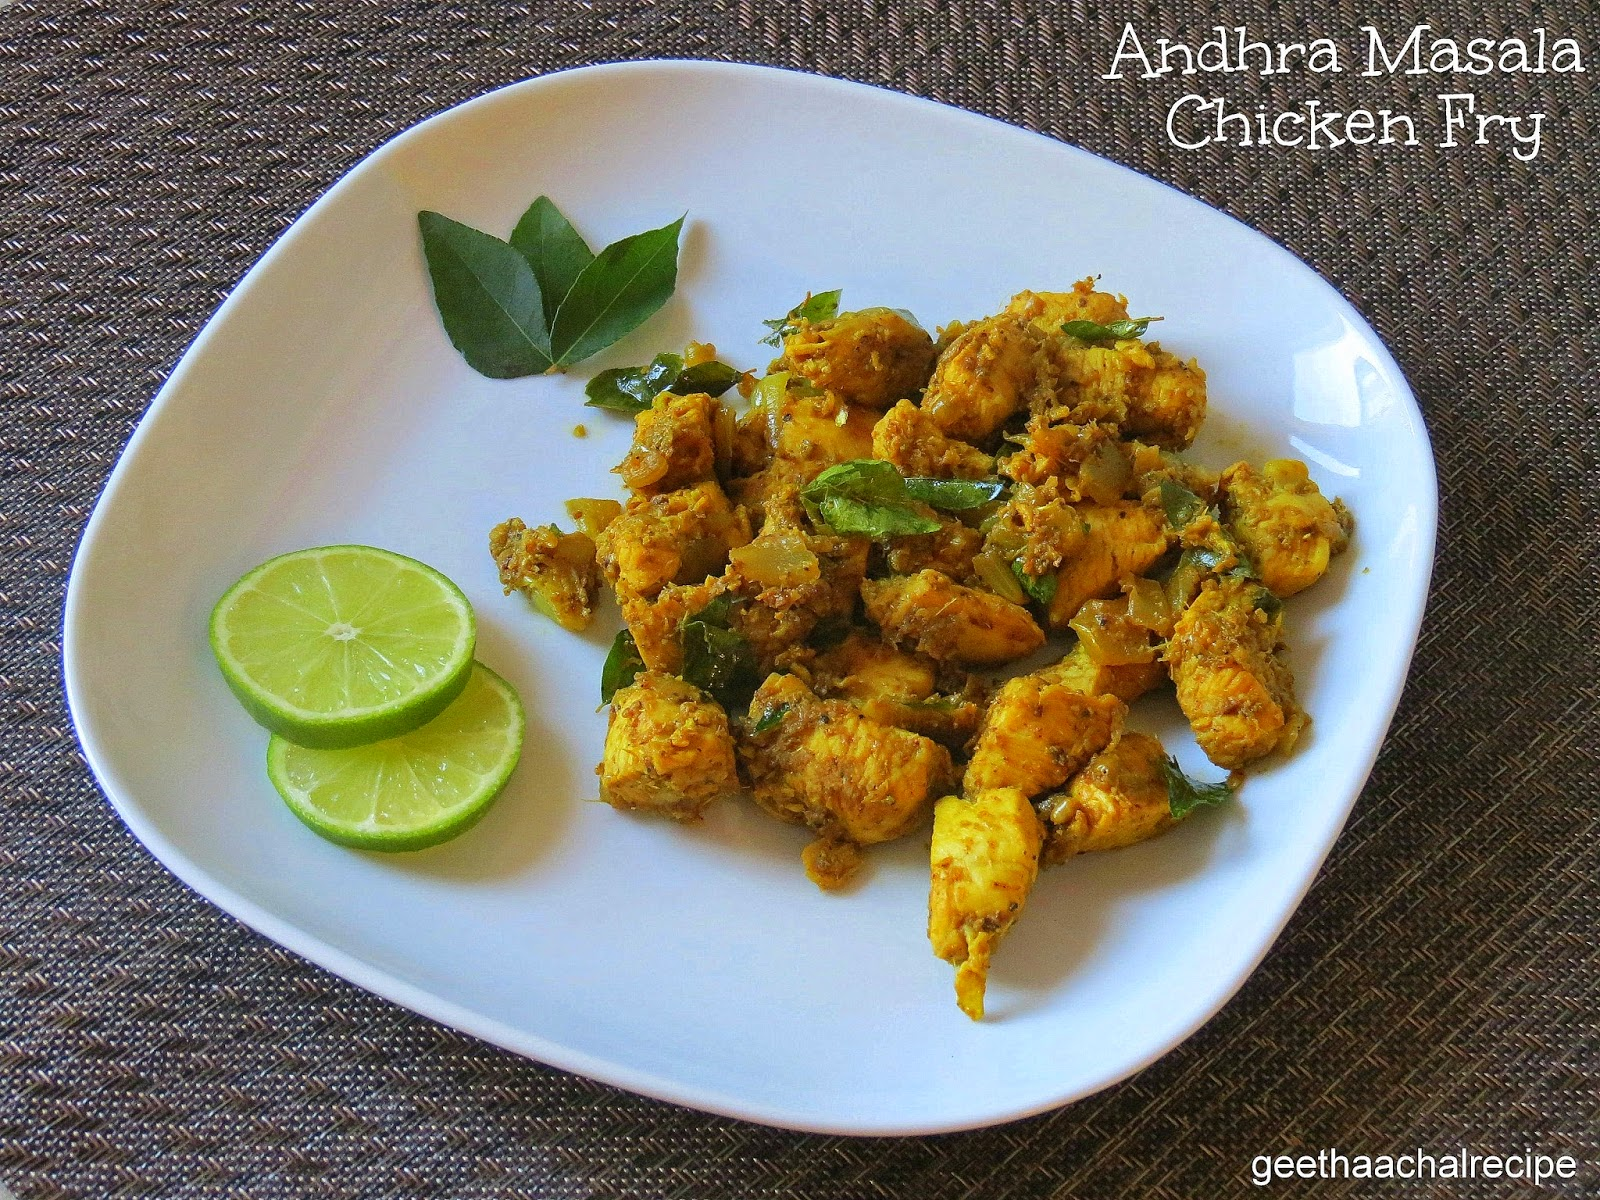 ... ப்ரை - Andhra Masala Chicken Fry Recipe - Chicken Recipe